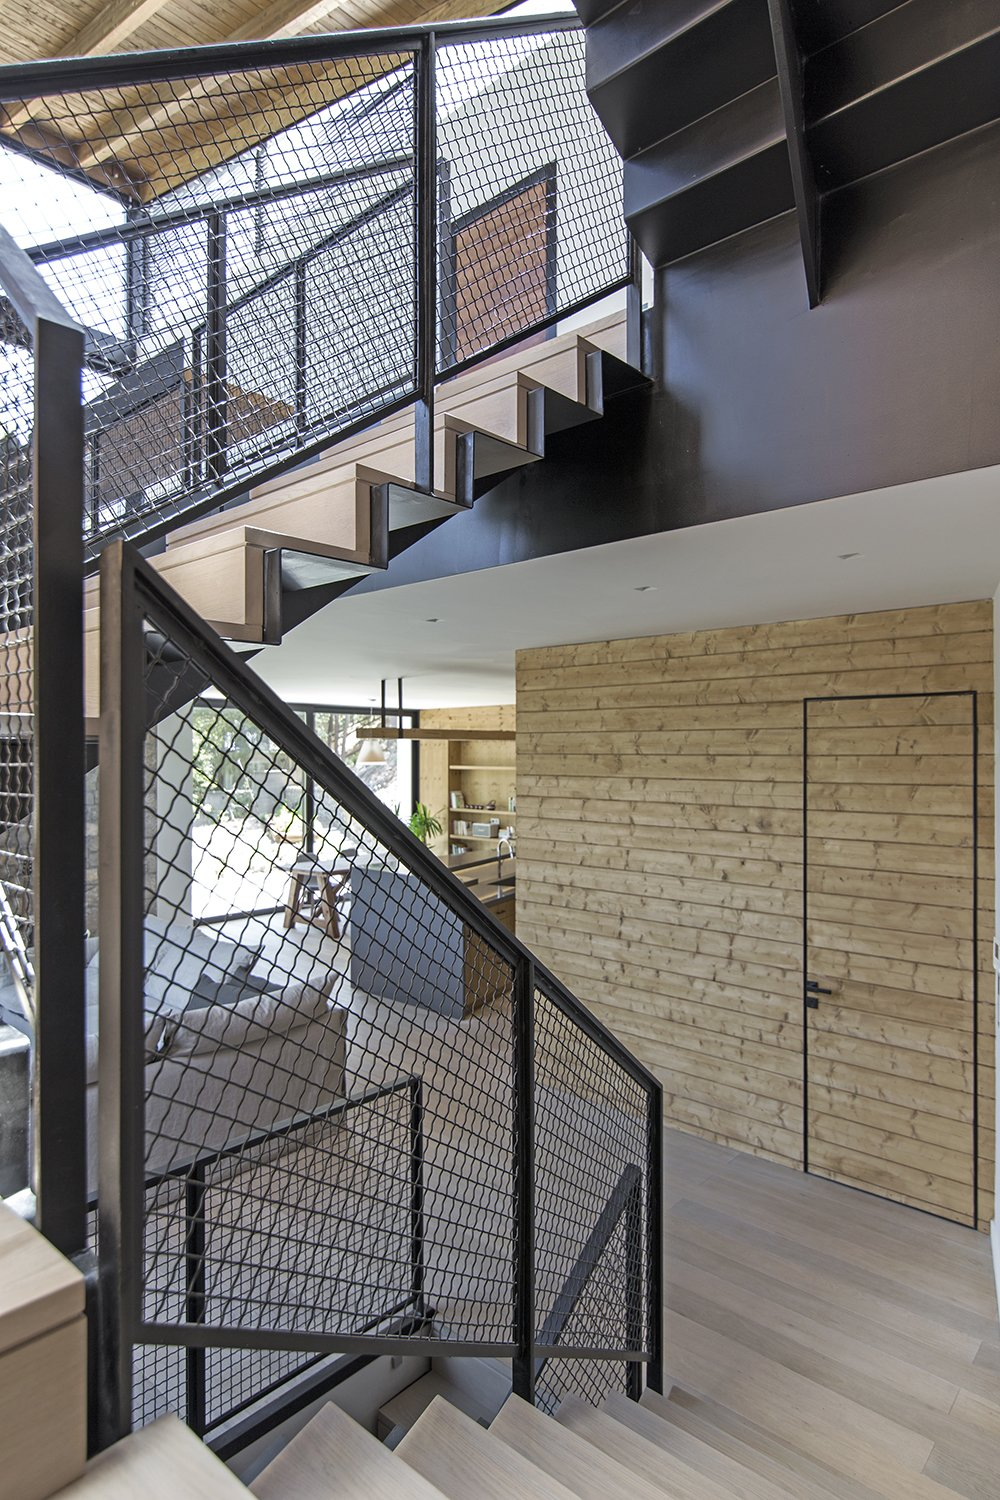 All finishes appear in their natural state Tagged: Staircase, Metal Tread, and Metal Railing.  The Wedge House by Marianna Athanasiadou